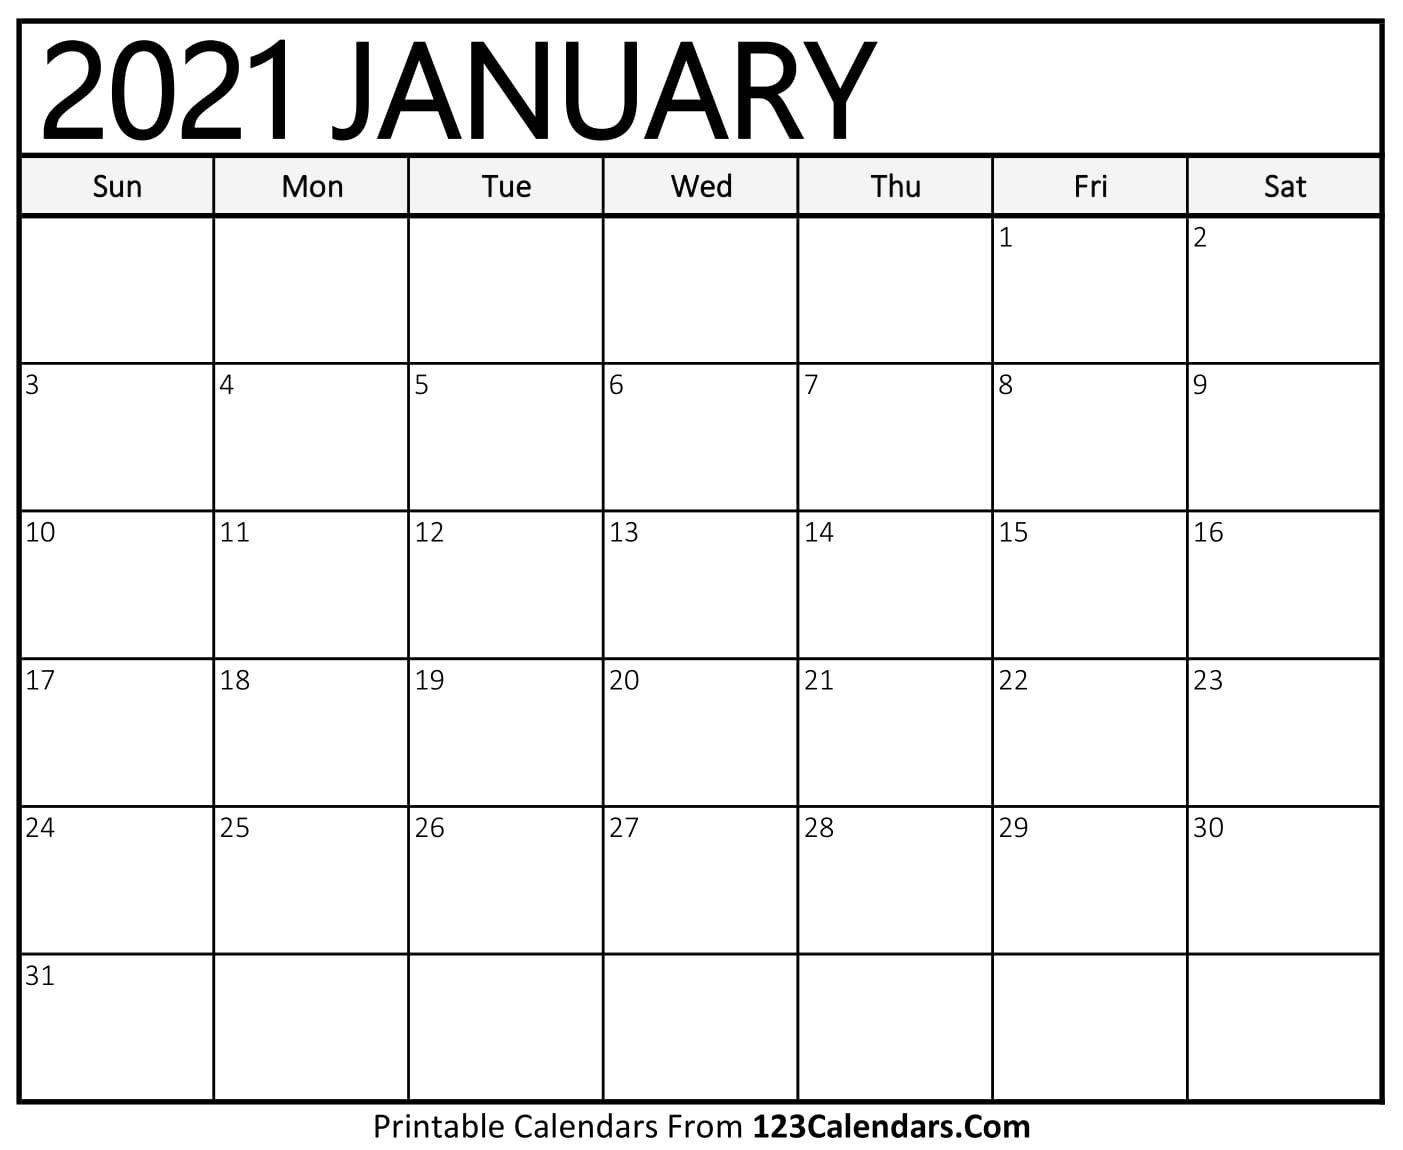 2021 Printable Calendar | 123Calendars with Year Calendar 2020 With Space To Write Int